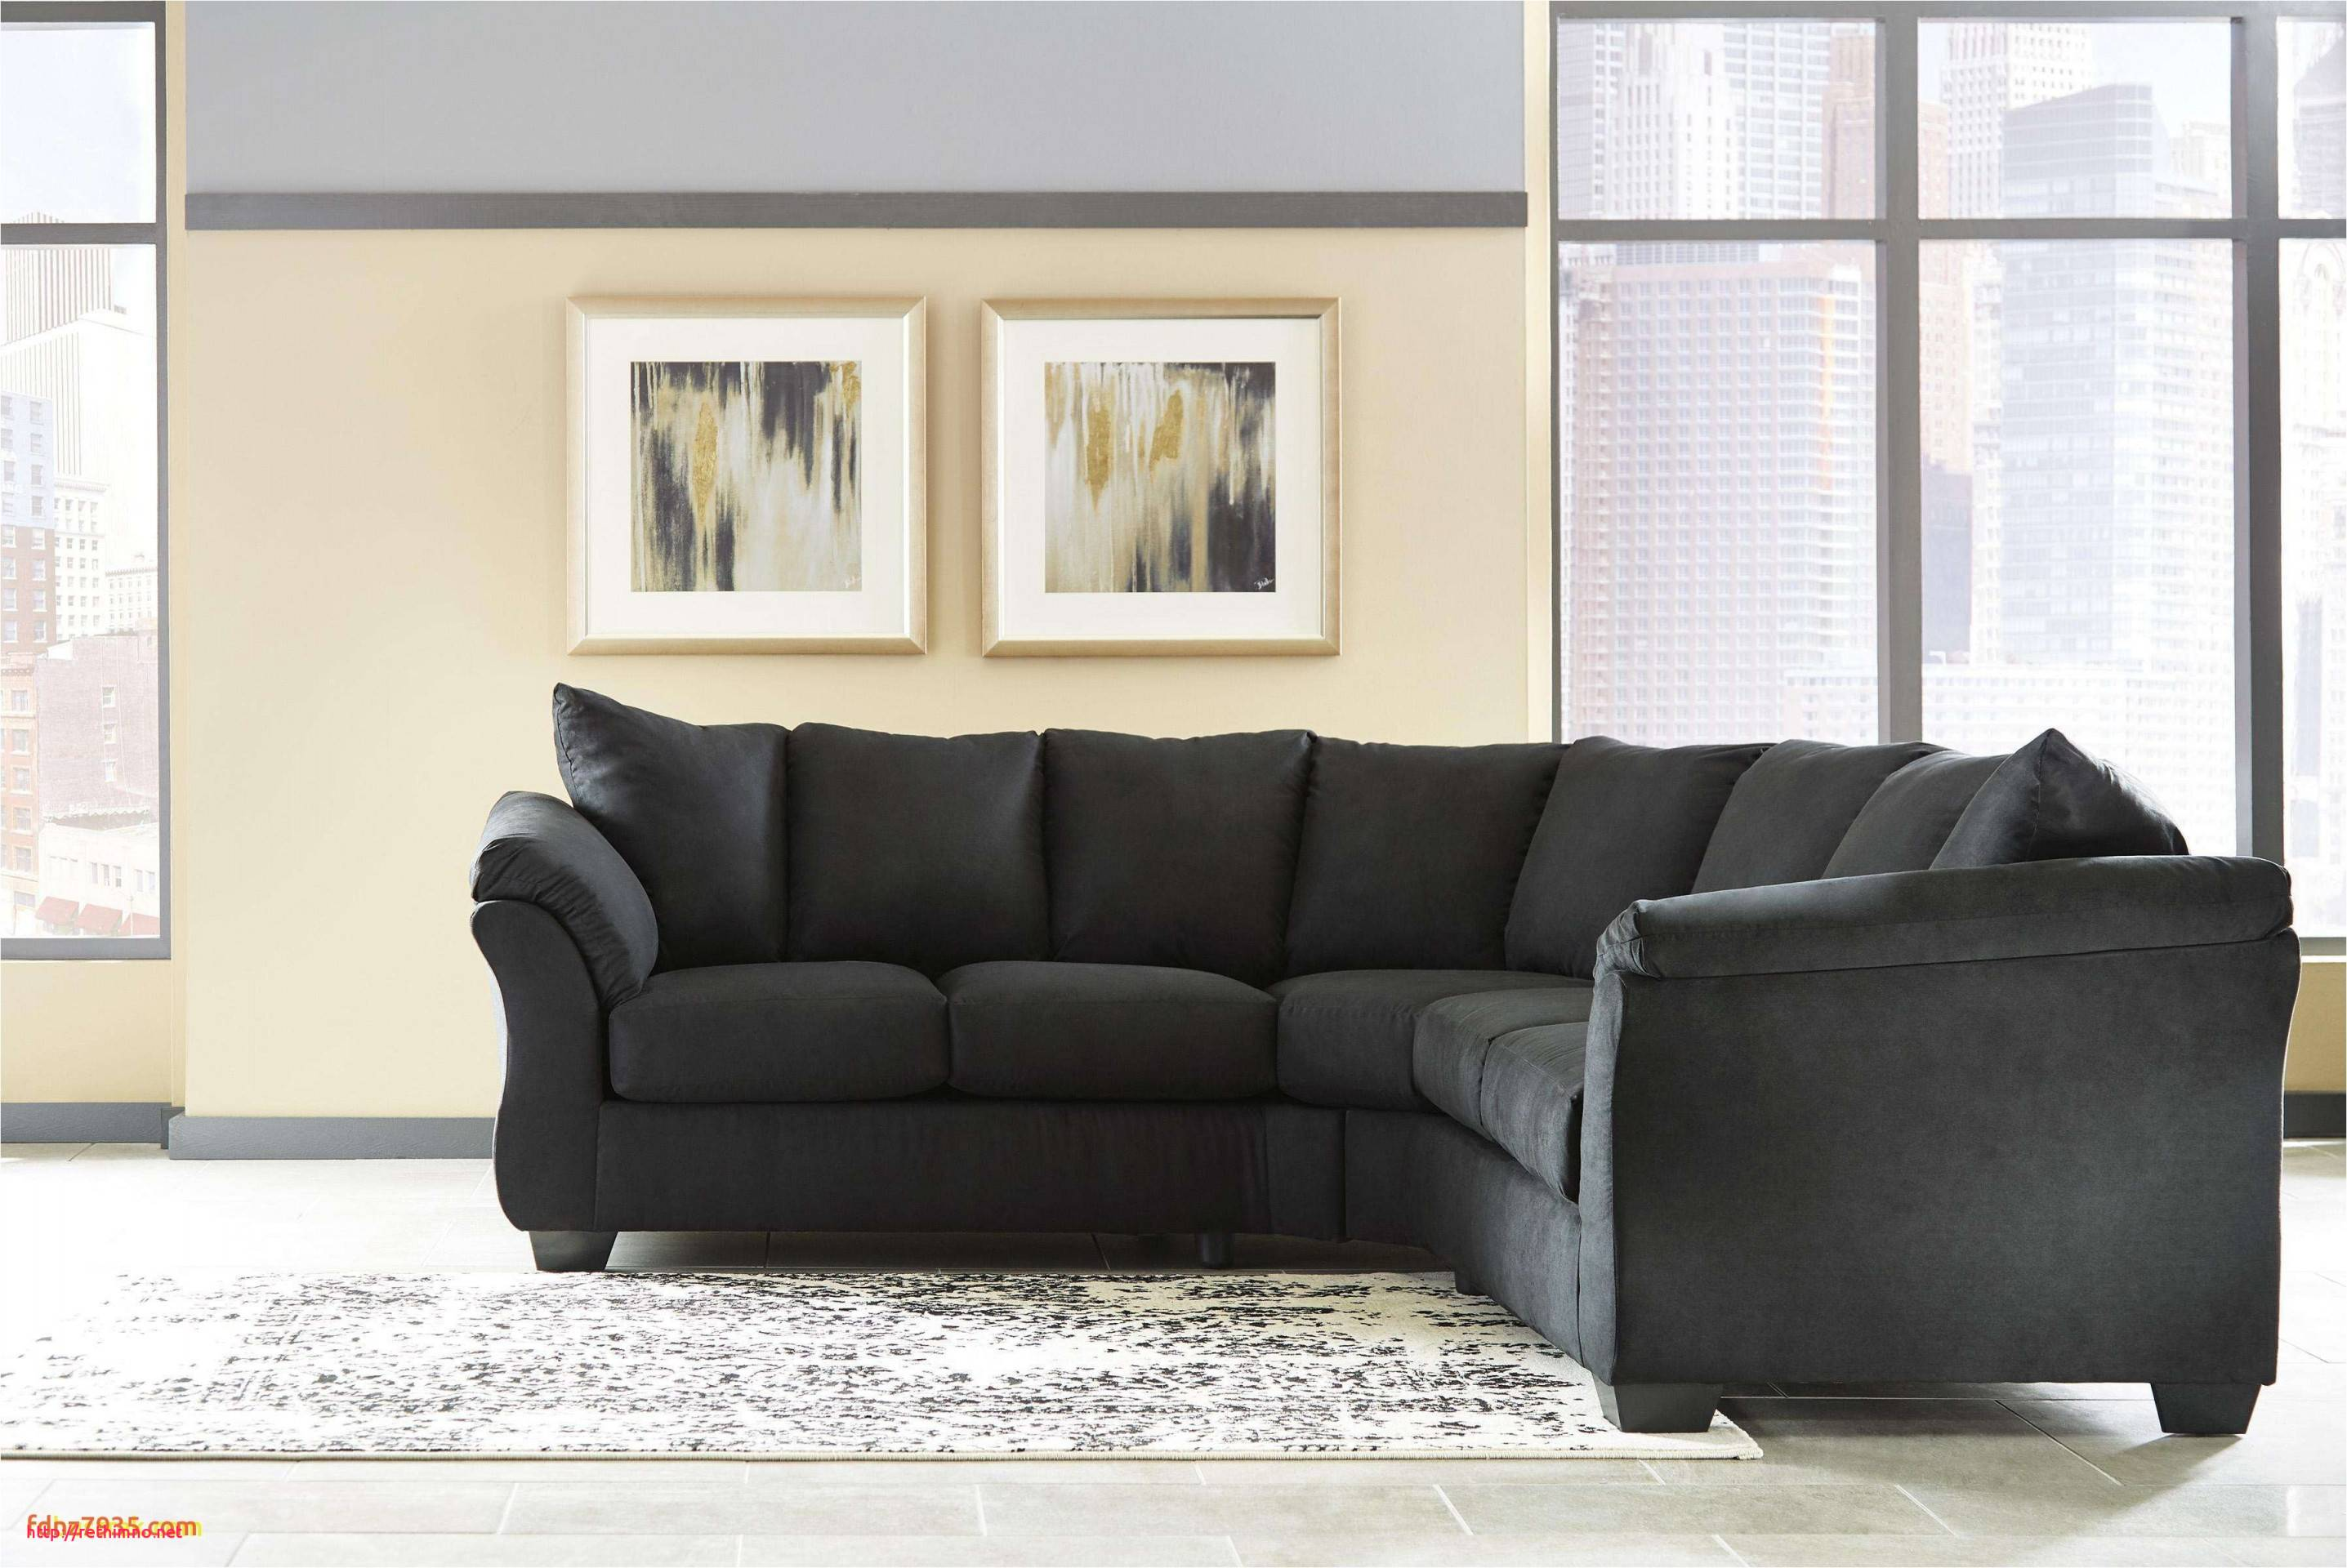 sectional couch living spaces fresh fresh designer sectional sofas of sectional couch living spaces